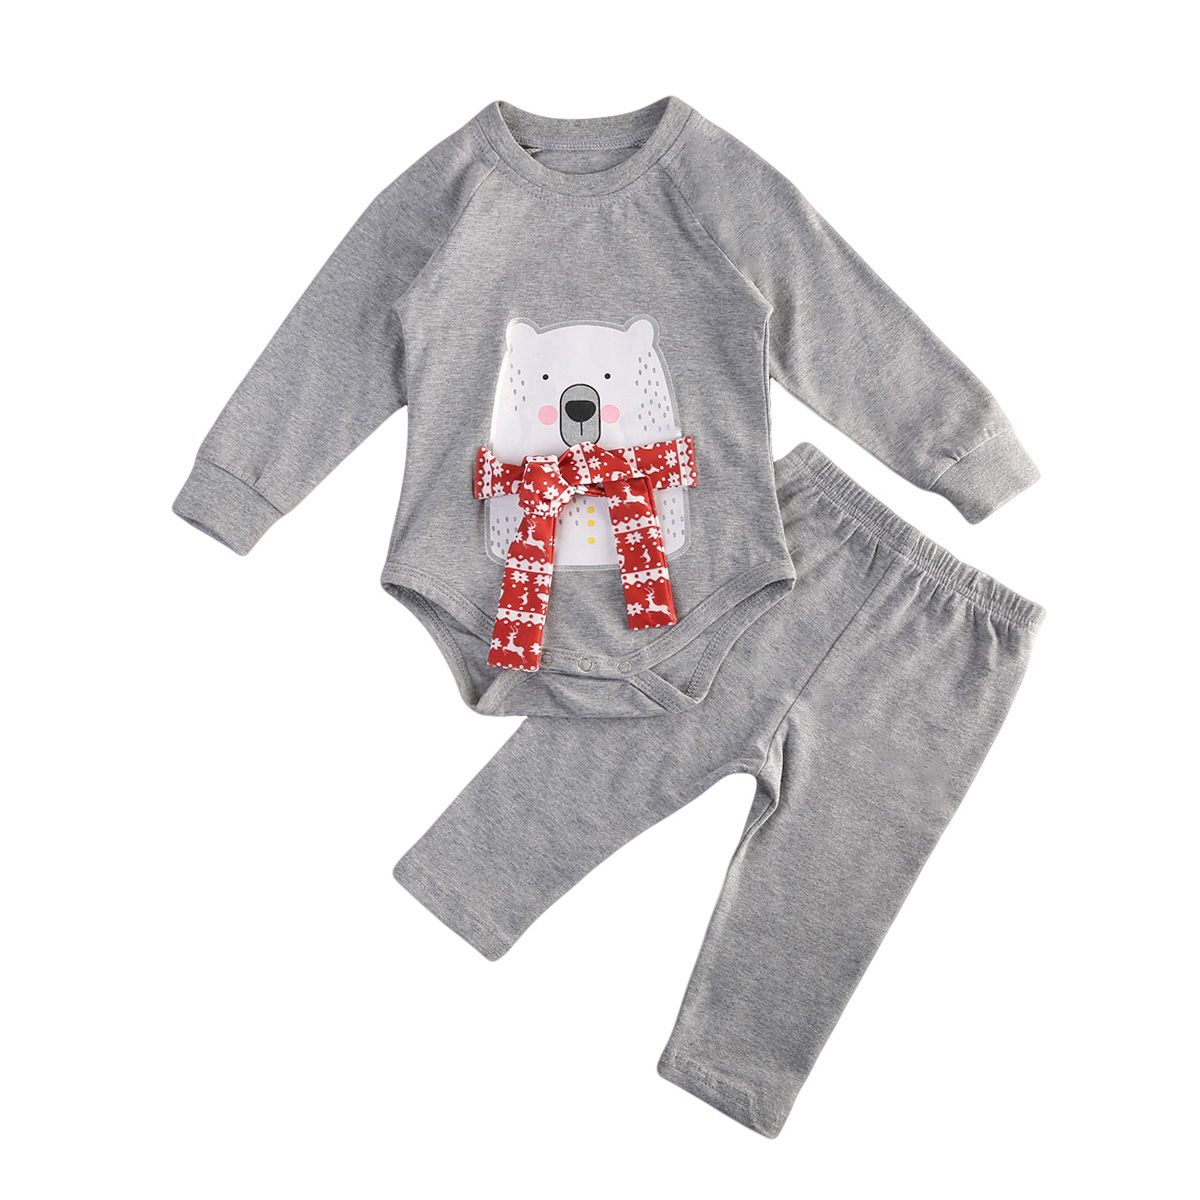 Cute Newborn Baby Cartoon Clothing Sets Boys Girls Christmas Clothes Tops Romper Pants 2PCS Fashion Long Sleeve Outfits girls tops cute pants outfit clothes newborn kids baby girl clothing sets summer off shoulder striped short sleeve 1 6t